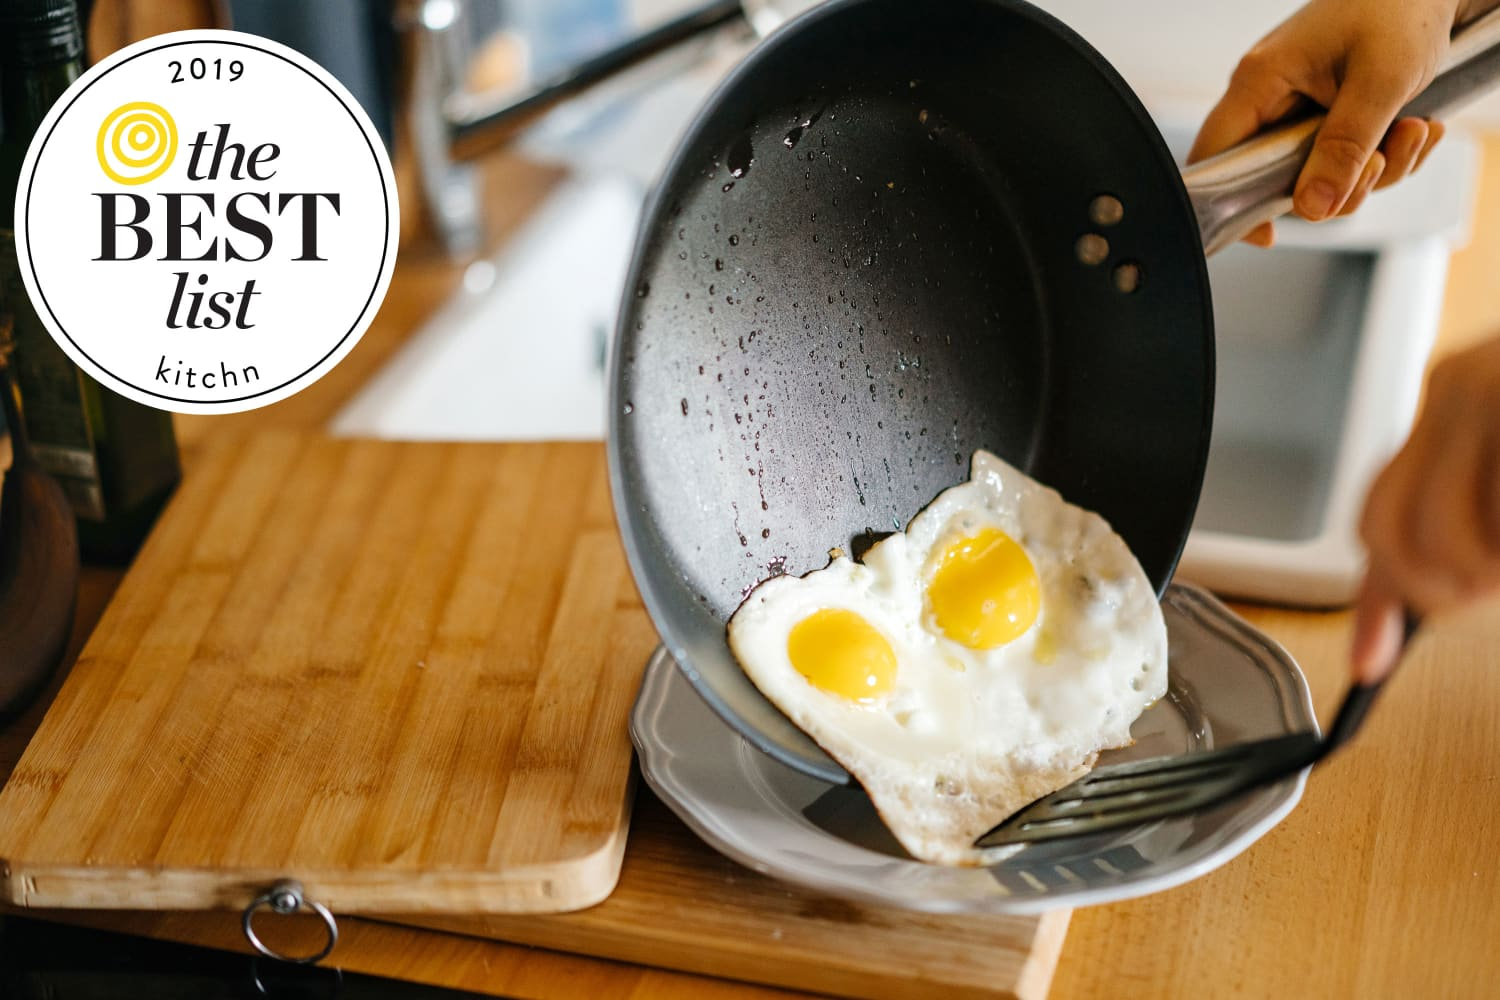 The Best Frying Pans You Can Buy in 2019